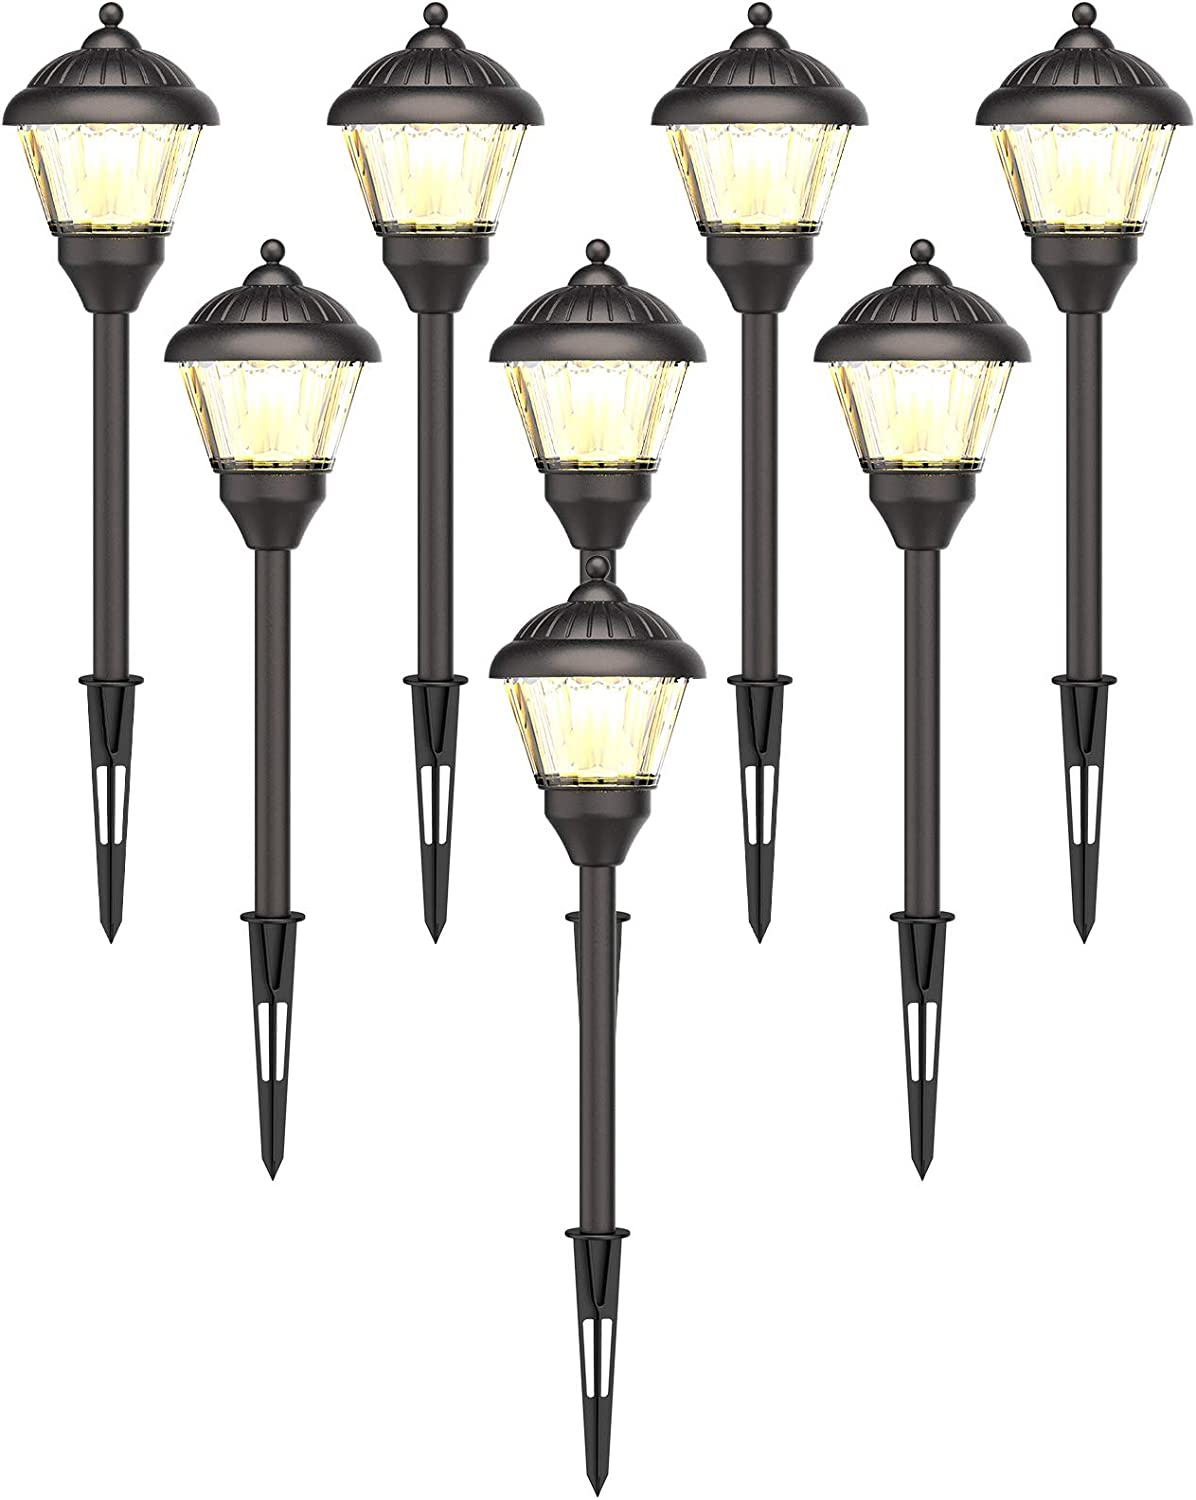 GOODSMANN Landscape Lighting Low Voltage Path Lights LED 1.5 Watt Floodlight with Metal Spike and Connector 100 Lumens for Outdoor Lighting Garden Patio Yard (8 Pack) 9920-G115-08